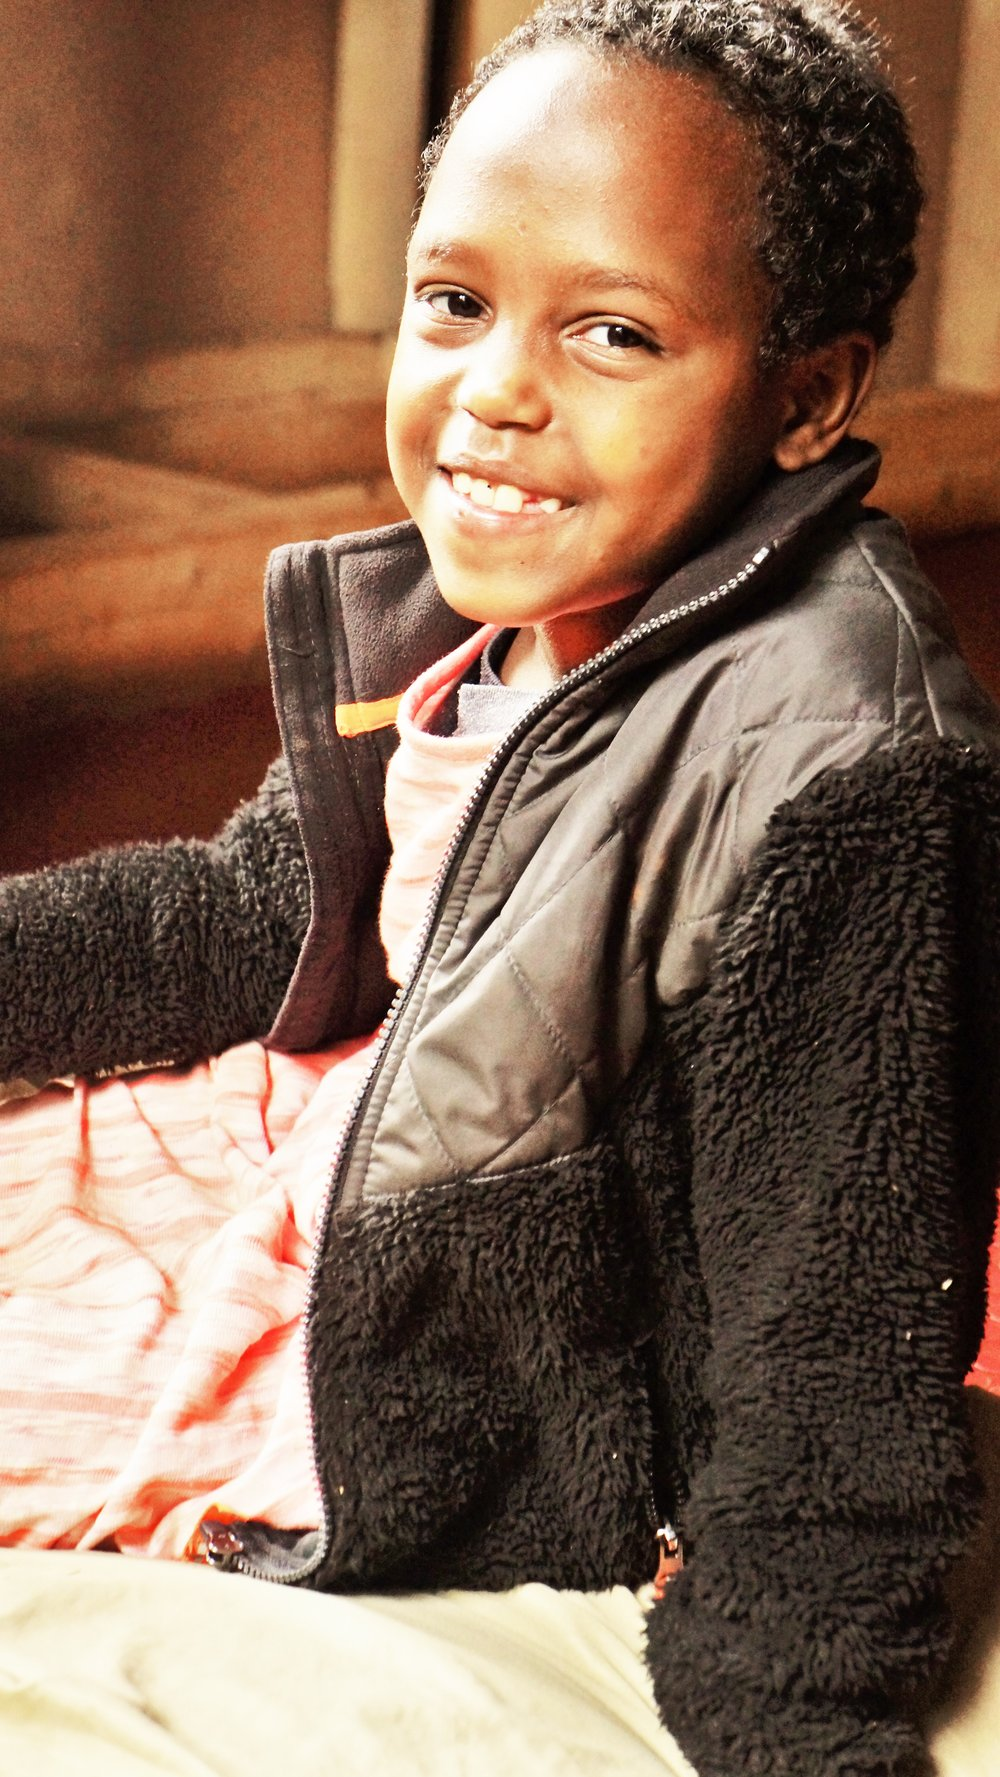 Bethlehem Mengestu Bethlehem came to us in February of 2017, and she is a lovely little 6 year old girl. She is now attending school, and quickly made some great friends with our other older children. Bethlehem is generously sponsored by Aurora Cohodes.